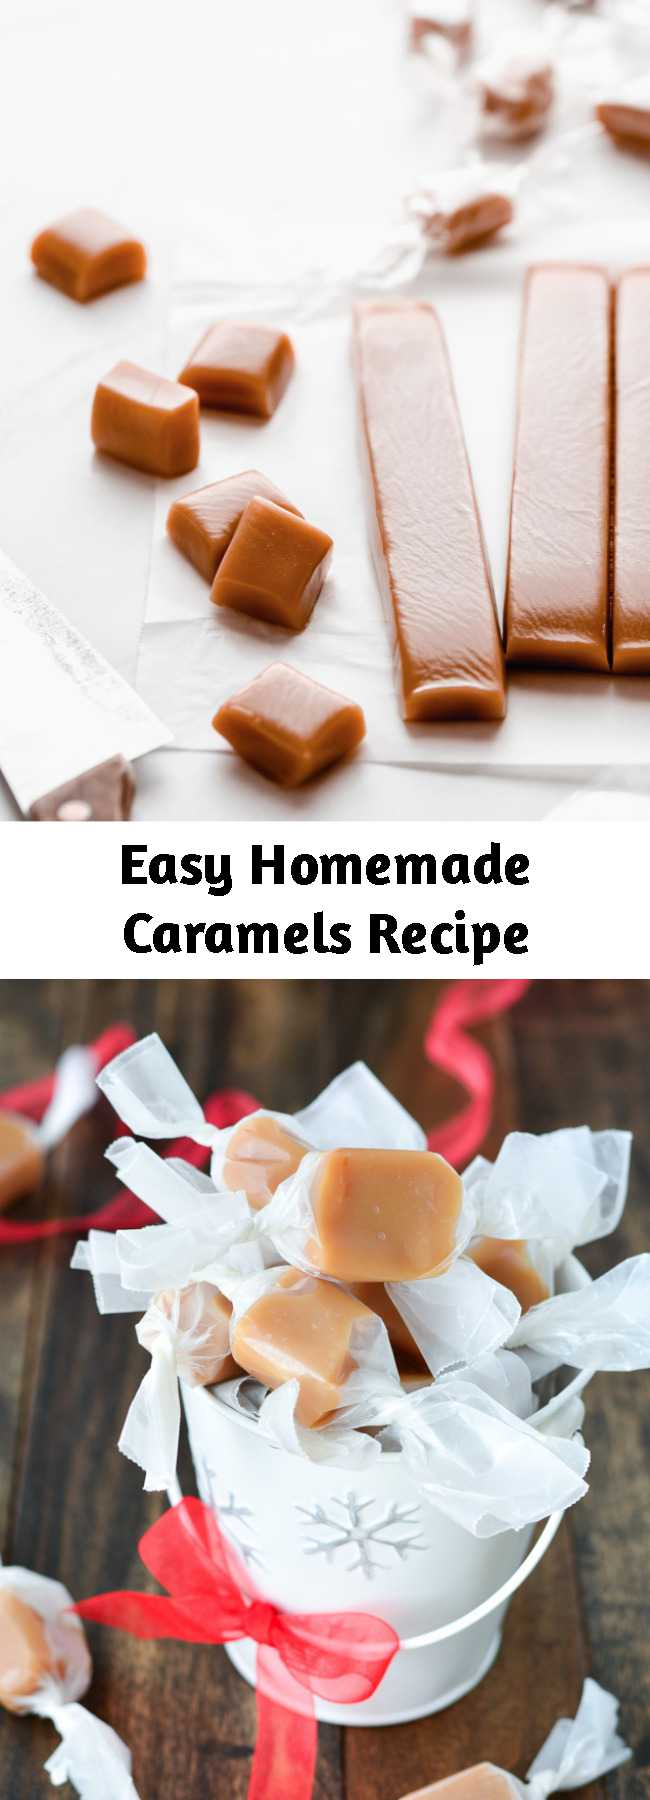 Easy Homemade Caramels Recipe - Soft, buttery, melt-in-your-mouth Homemade Caramels are the perfect holiday gift! Package them up and enjoy this heavenly candy all season long.